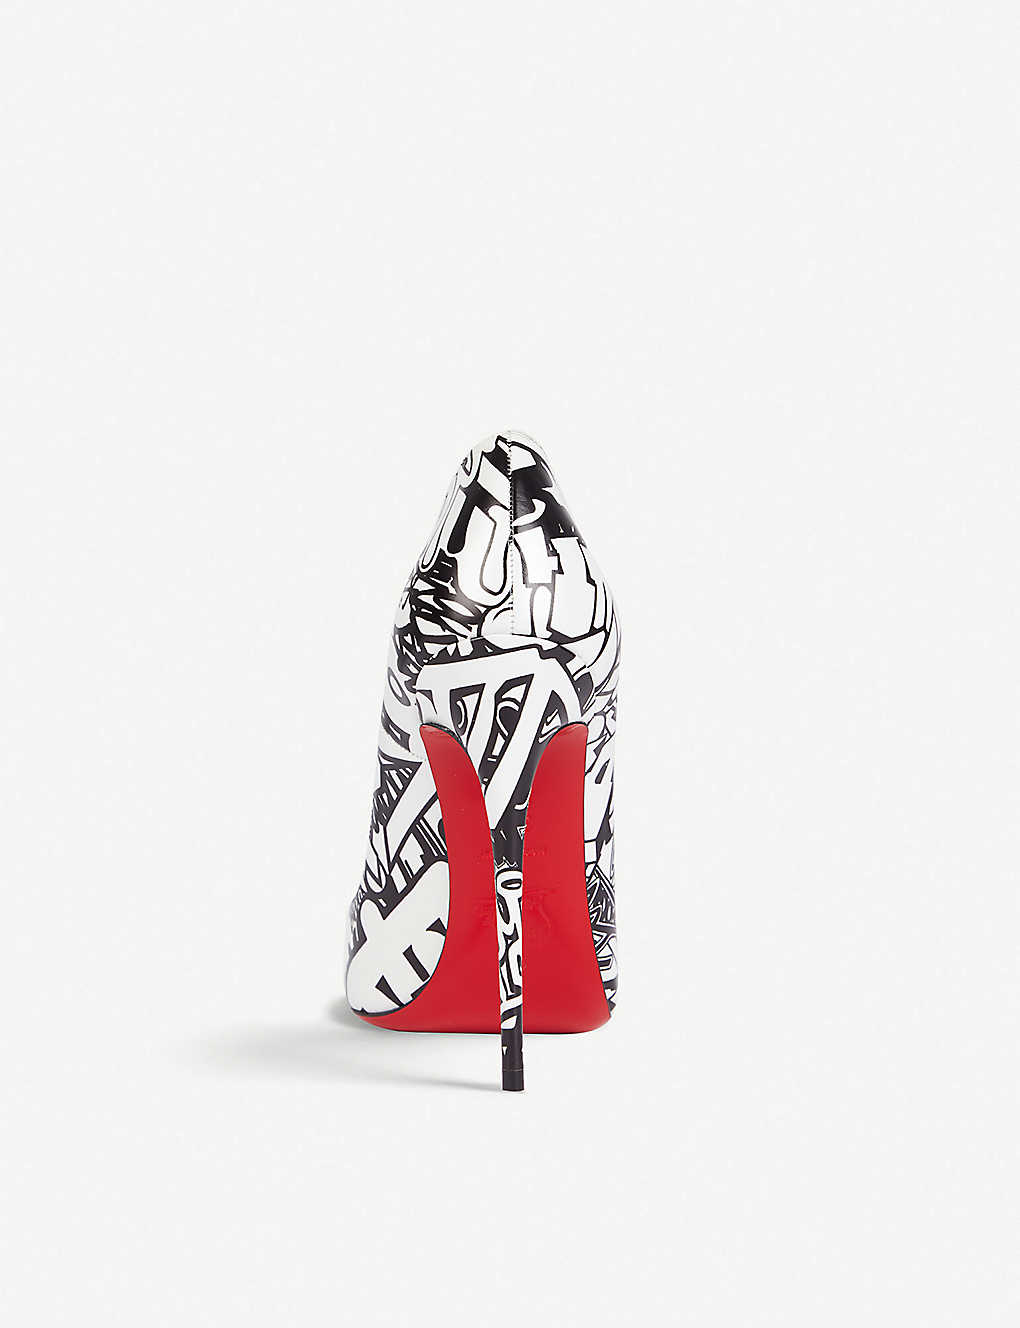 c4eefff05d68 CHRISTIAN LOUBOUTIN - So Kate 120 calf wallgraf black-white ...